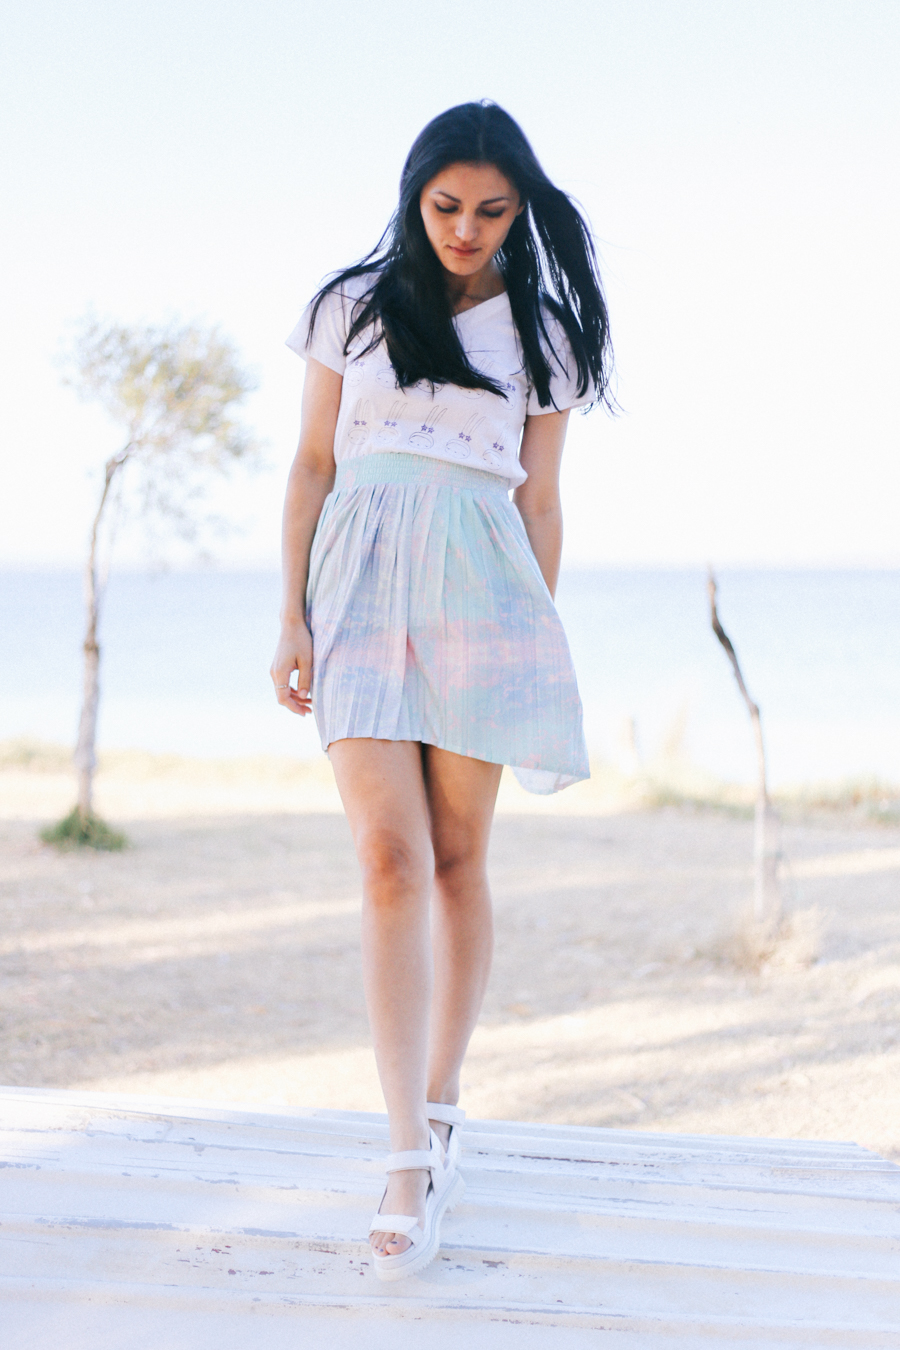 Pastel skirt from Chicwish. Fifi Lapin top.